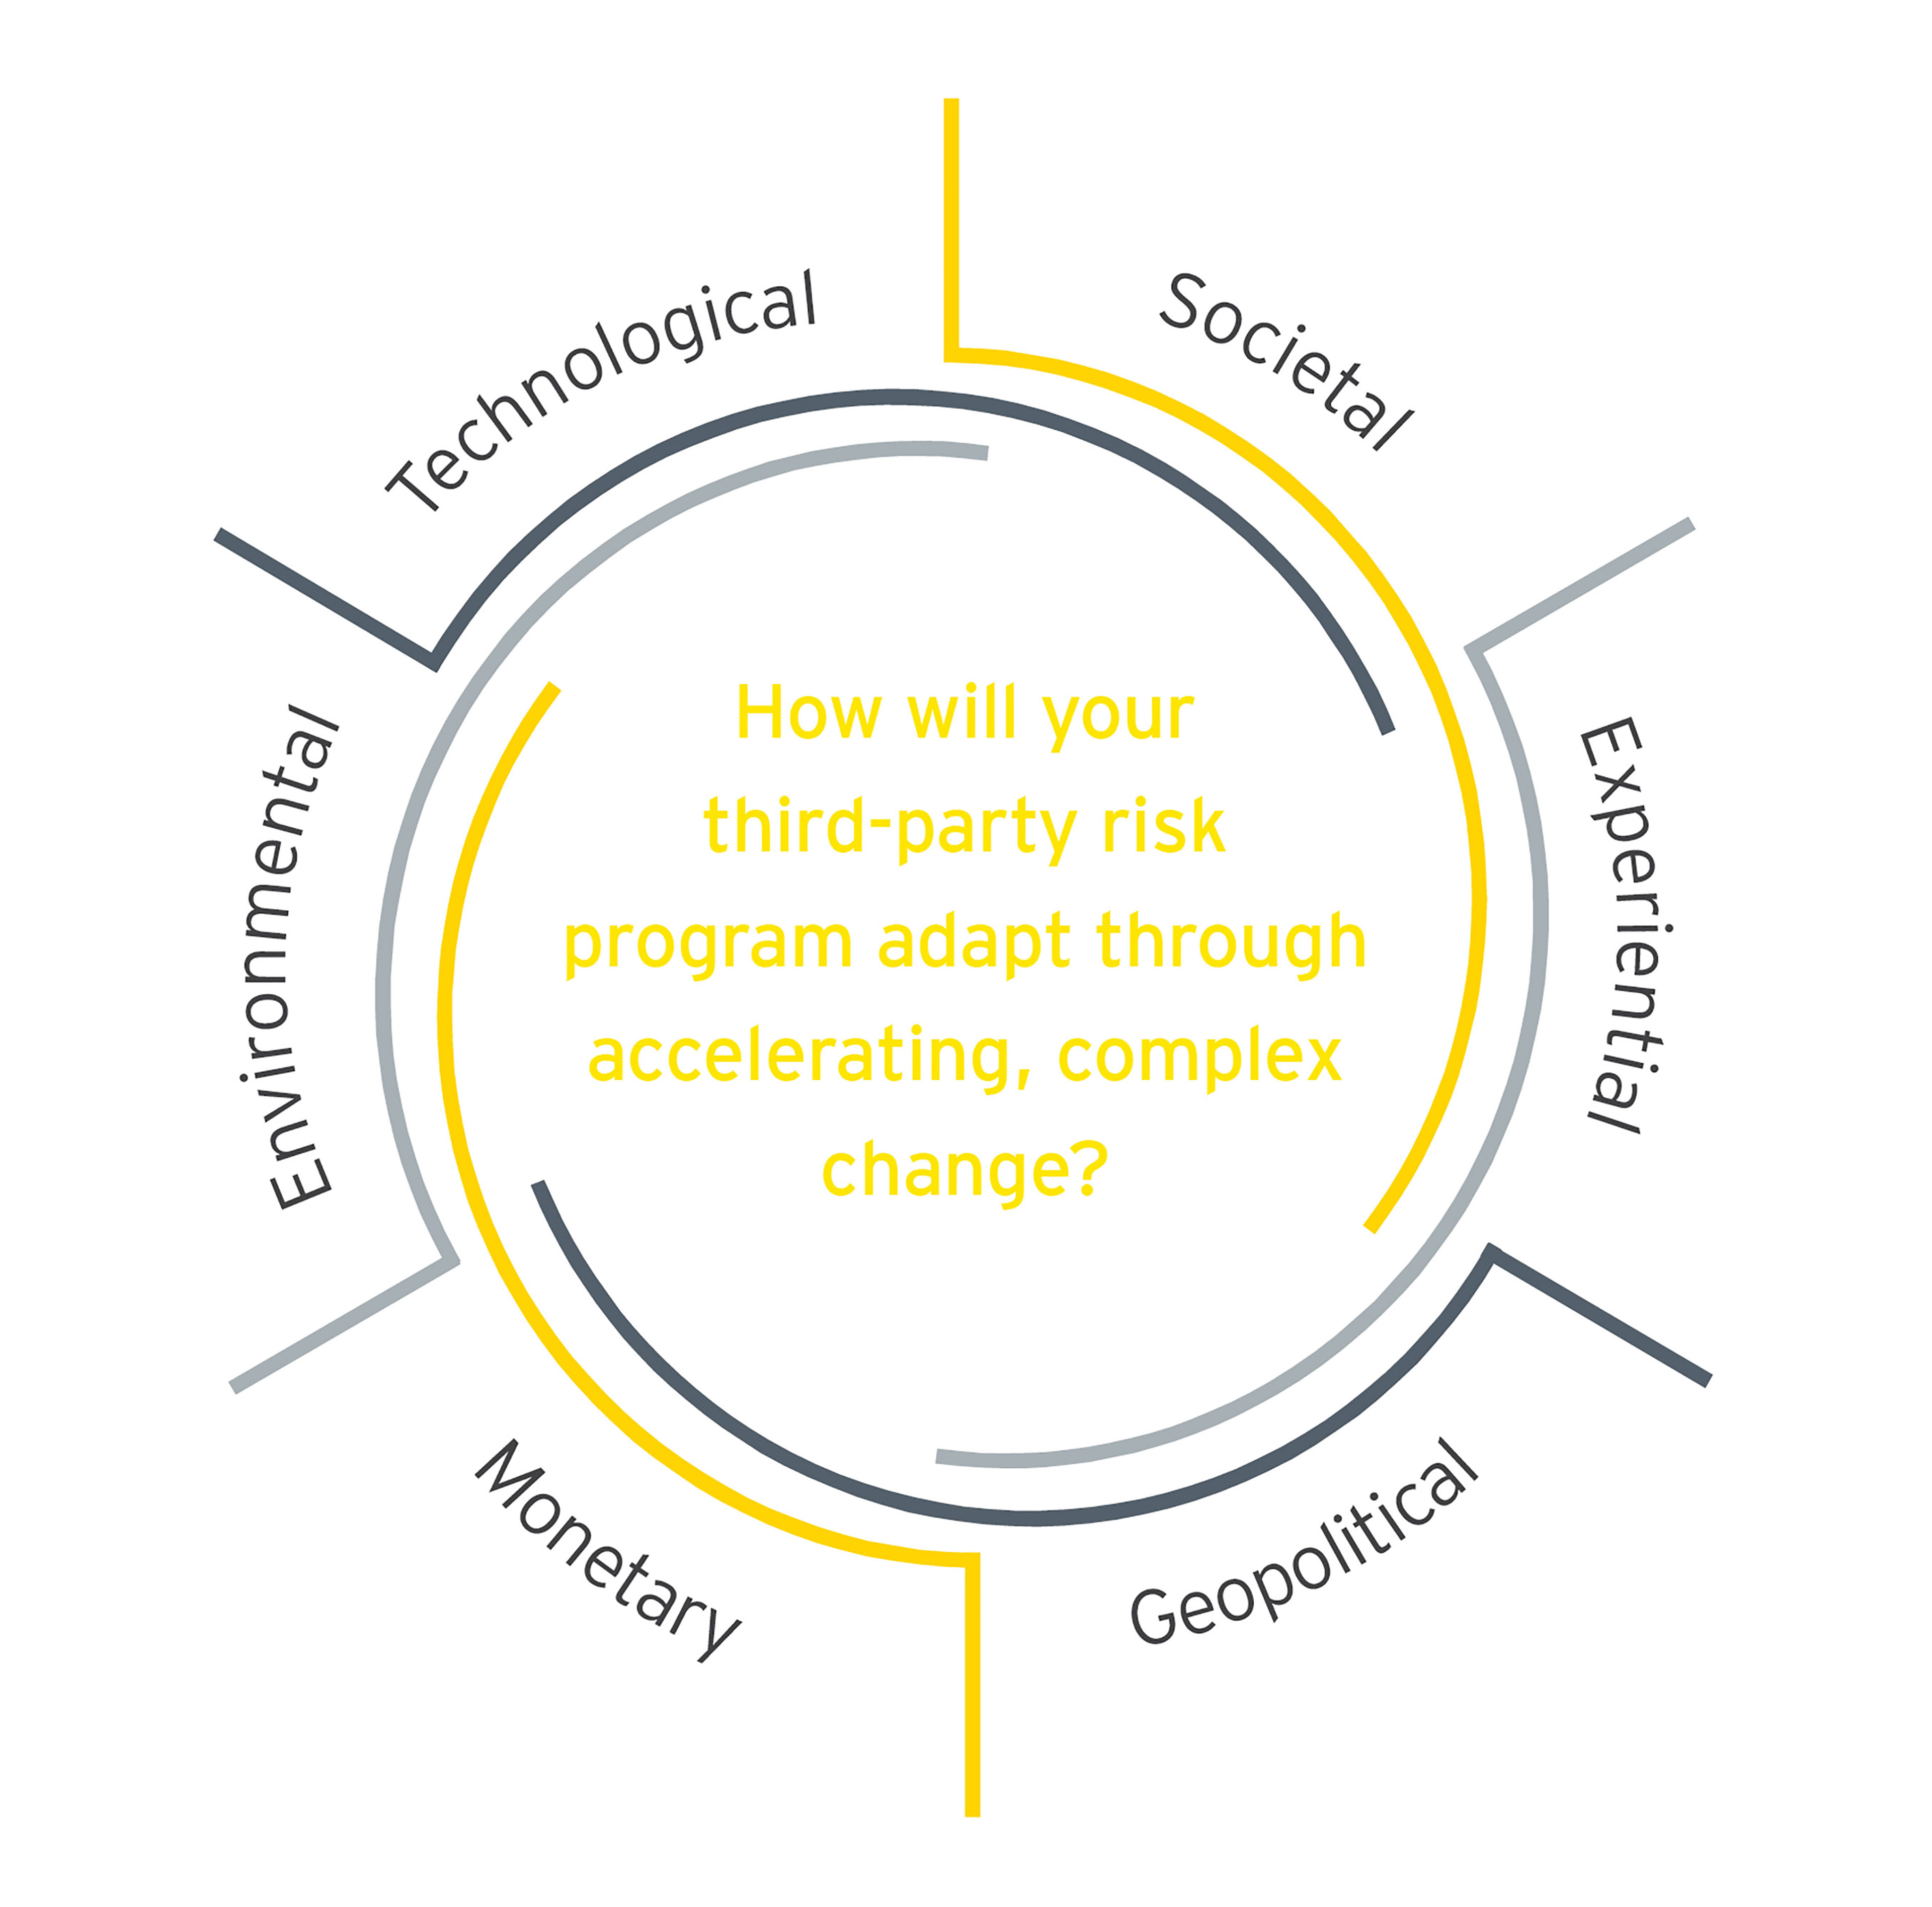 Graphic of how will your third party risk program adapt through accelerating complex change